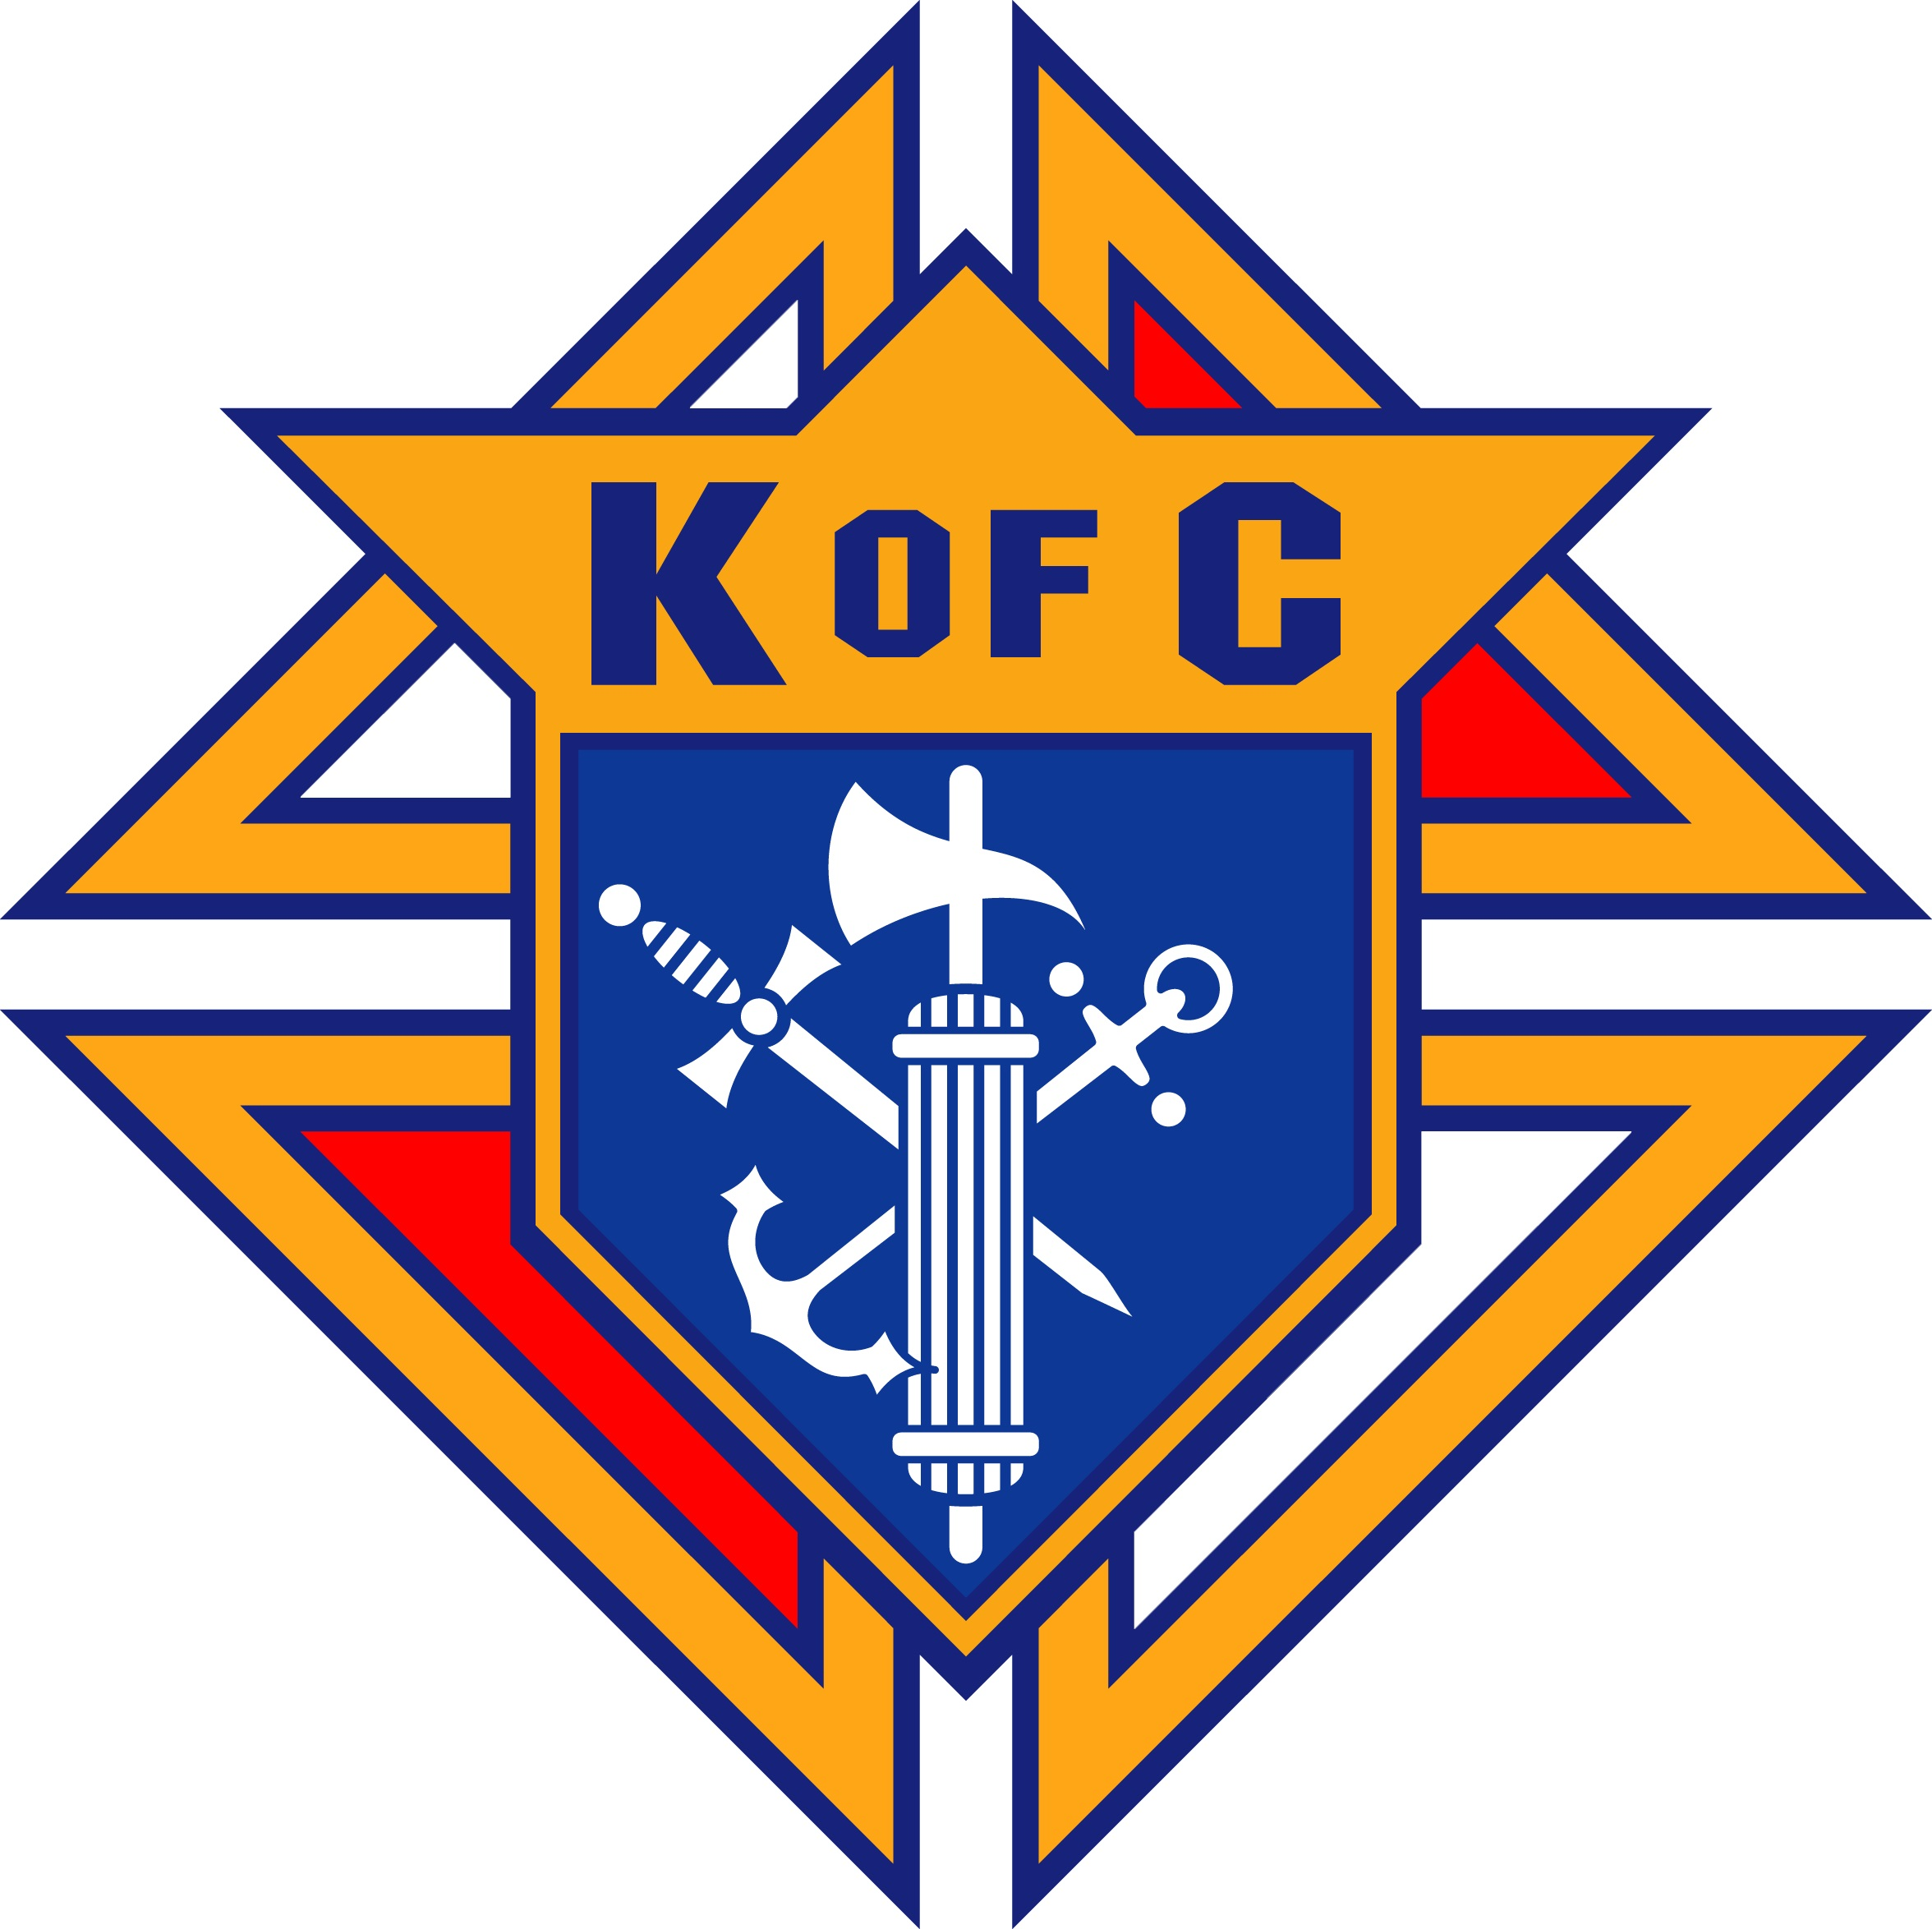 Knights of columbus Logos